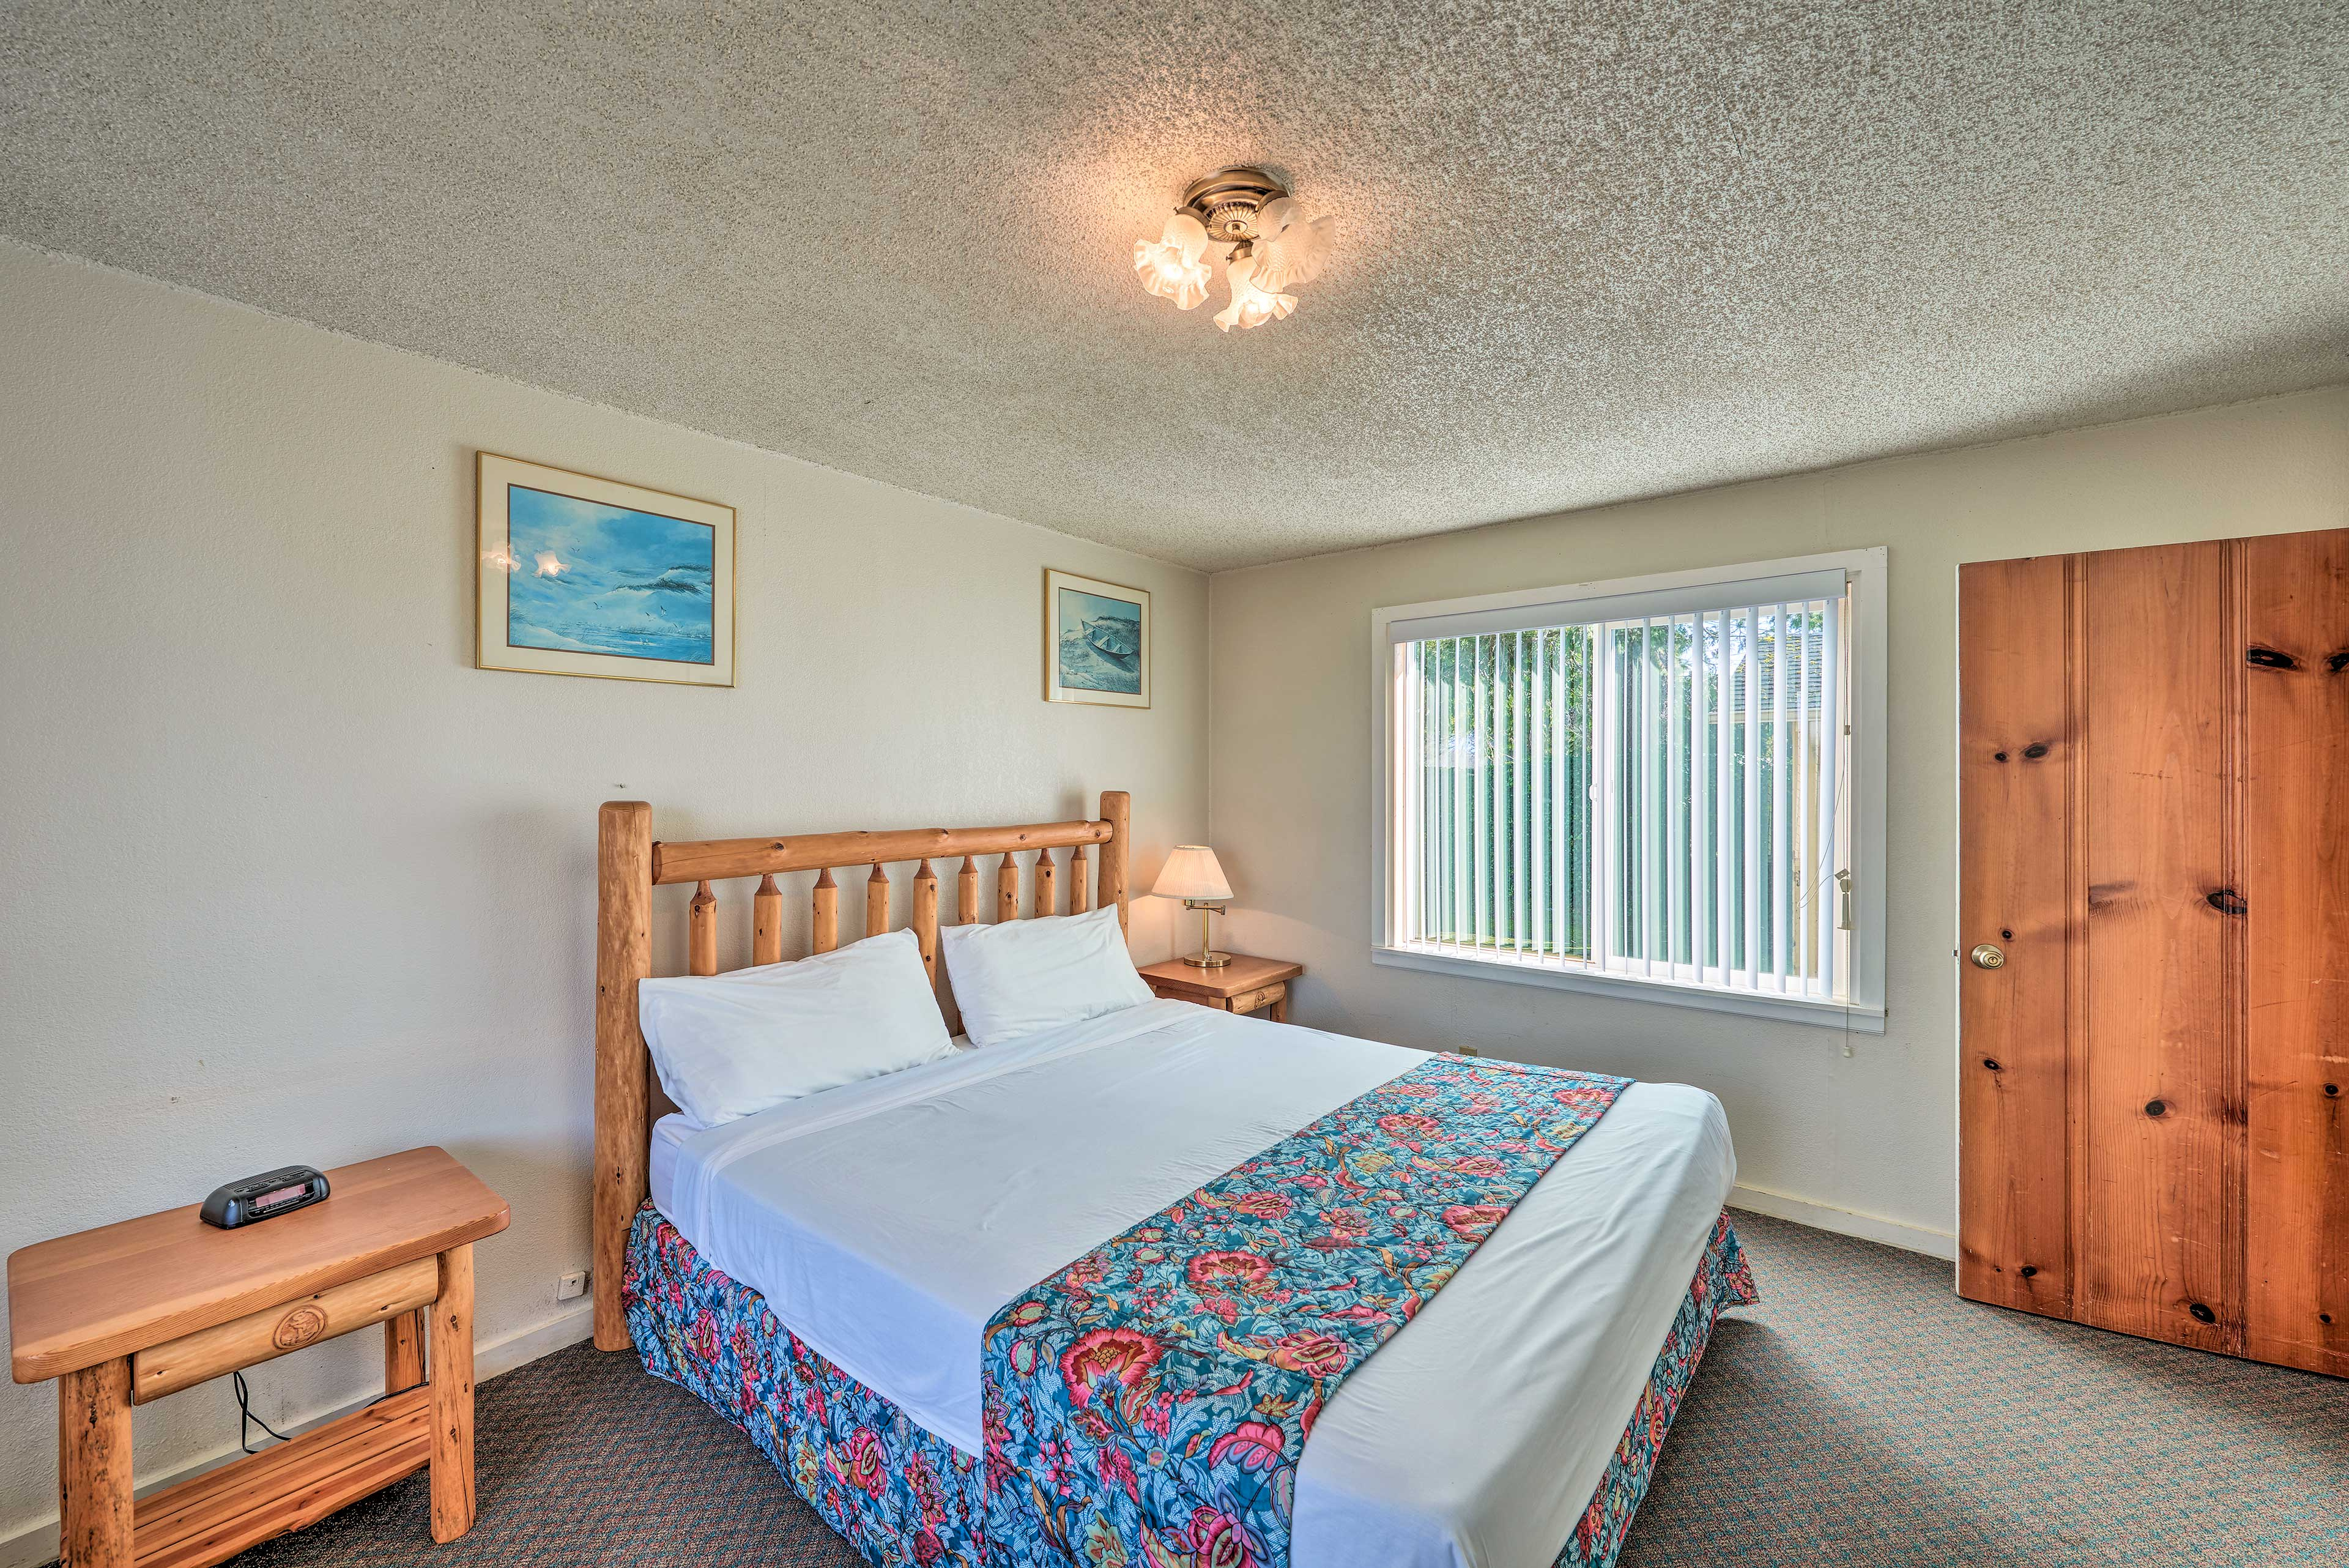 Perfect for couples, this room sleeps 2 in a queen bed.